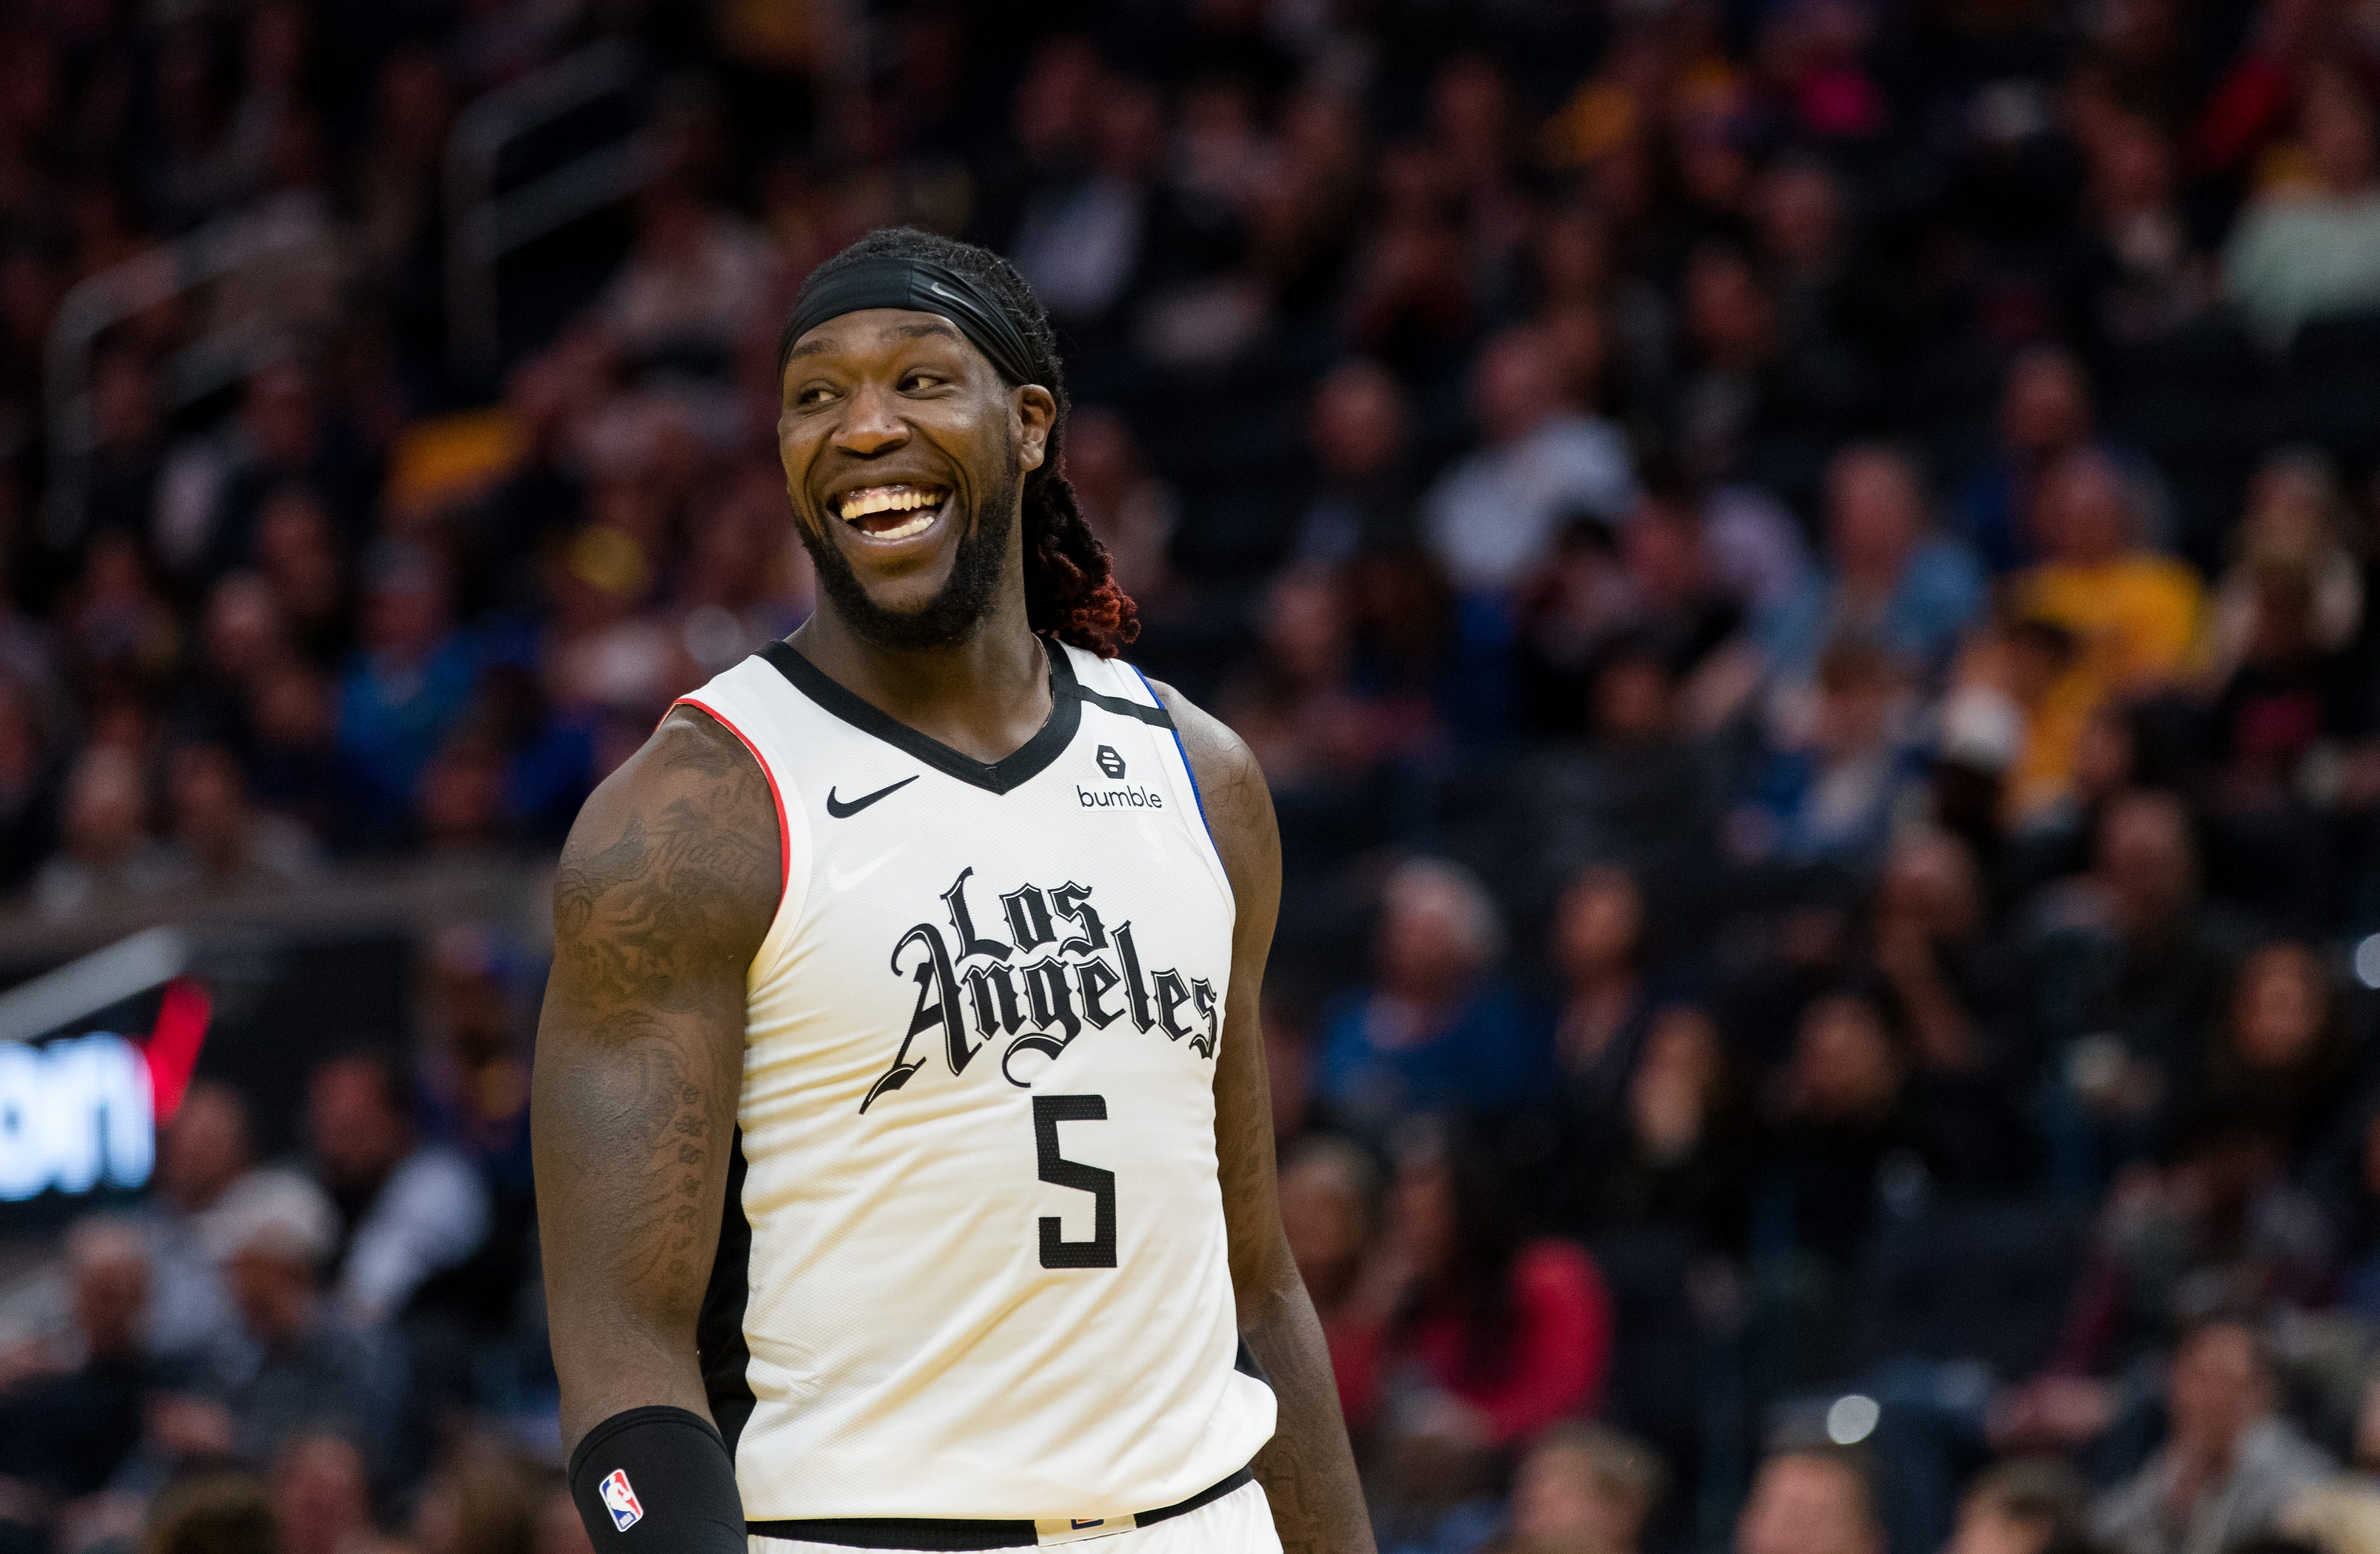 Montrezl Harrell leaving Clippers, signing 2-year deal with Lakers